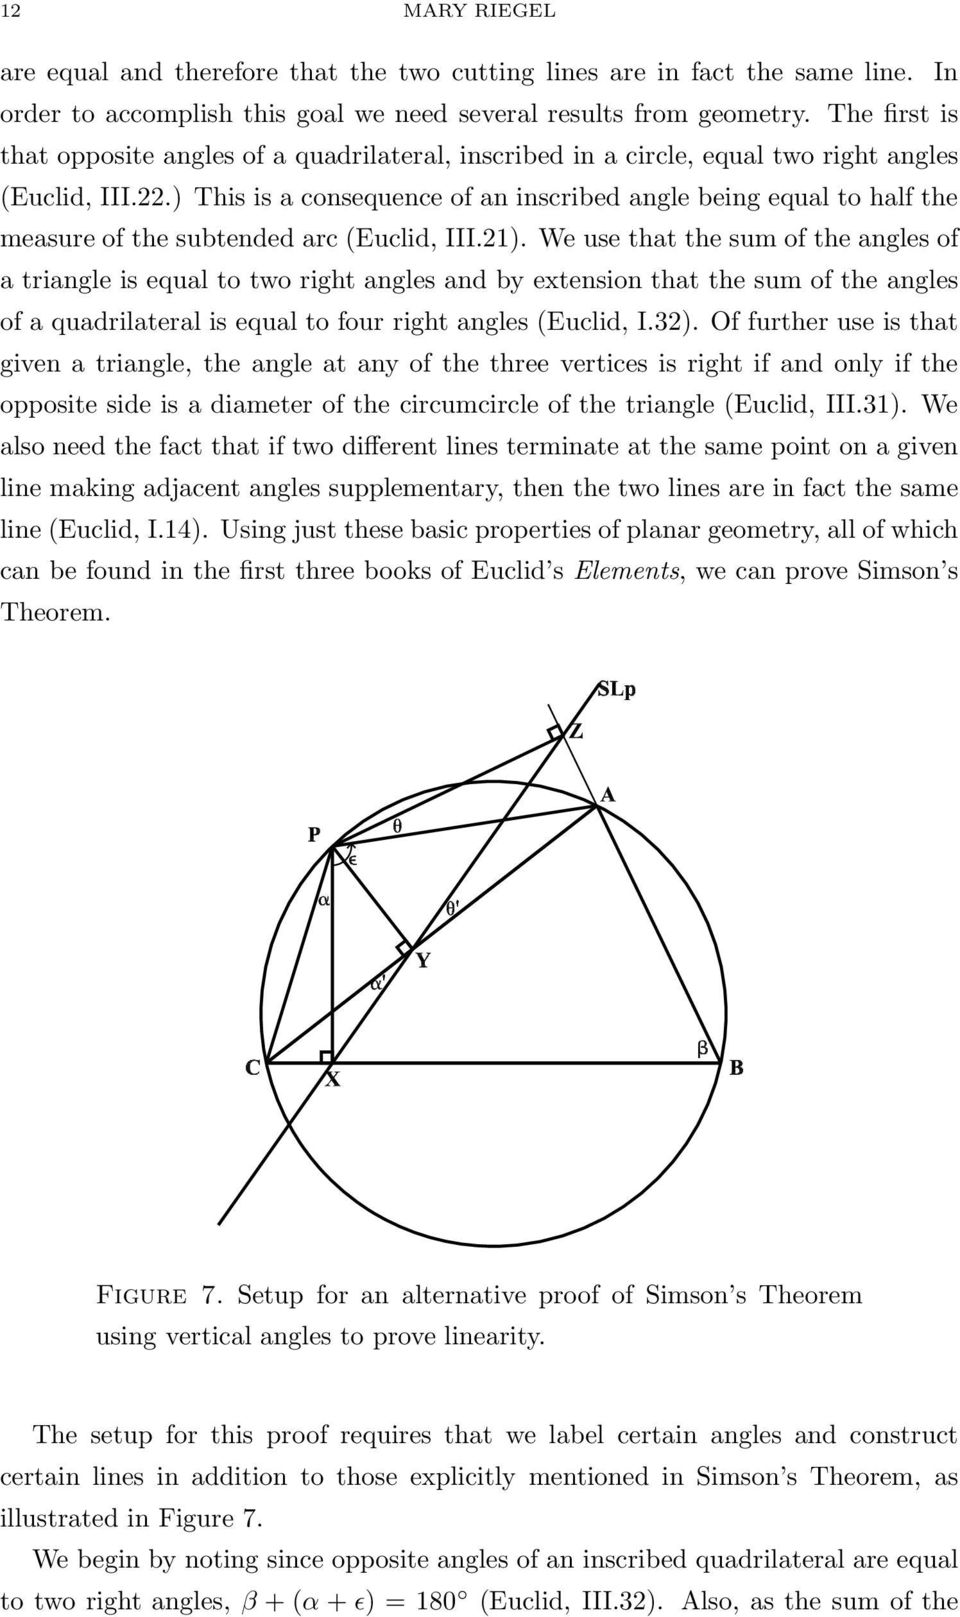 ) This is a consequence of an inscribed angle being equal to half the measure of the subtended arc (Euclid, III.21).